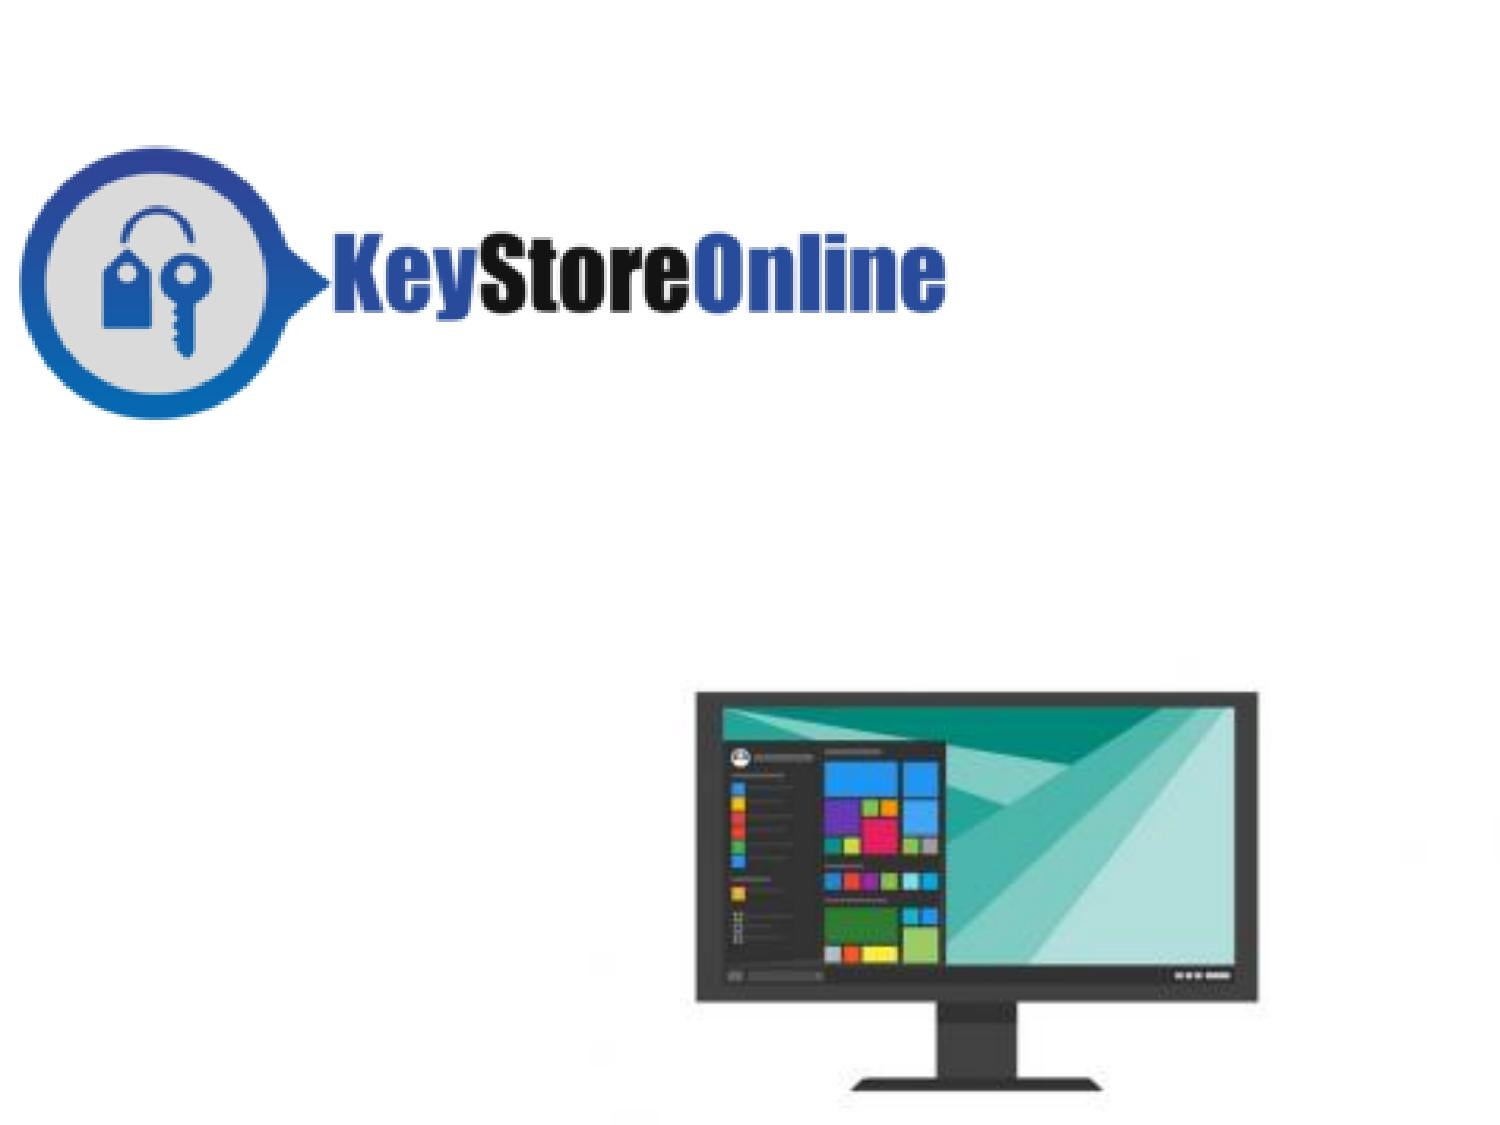 Windows 10 Key | Windows 10 Home Key - Full Support on All ...